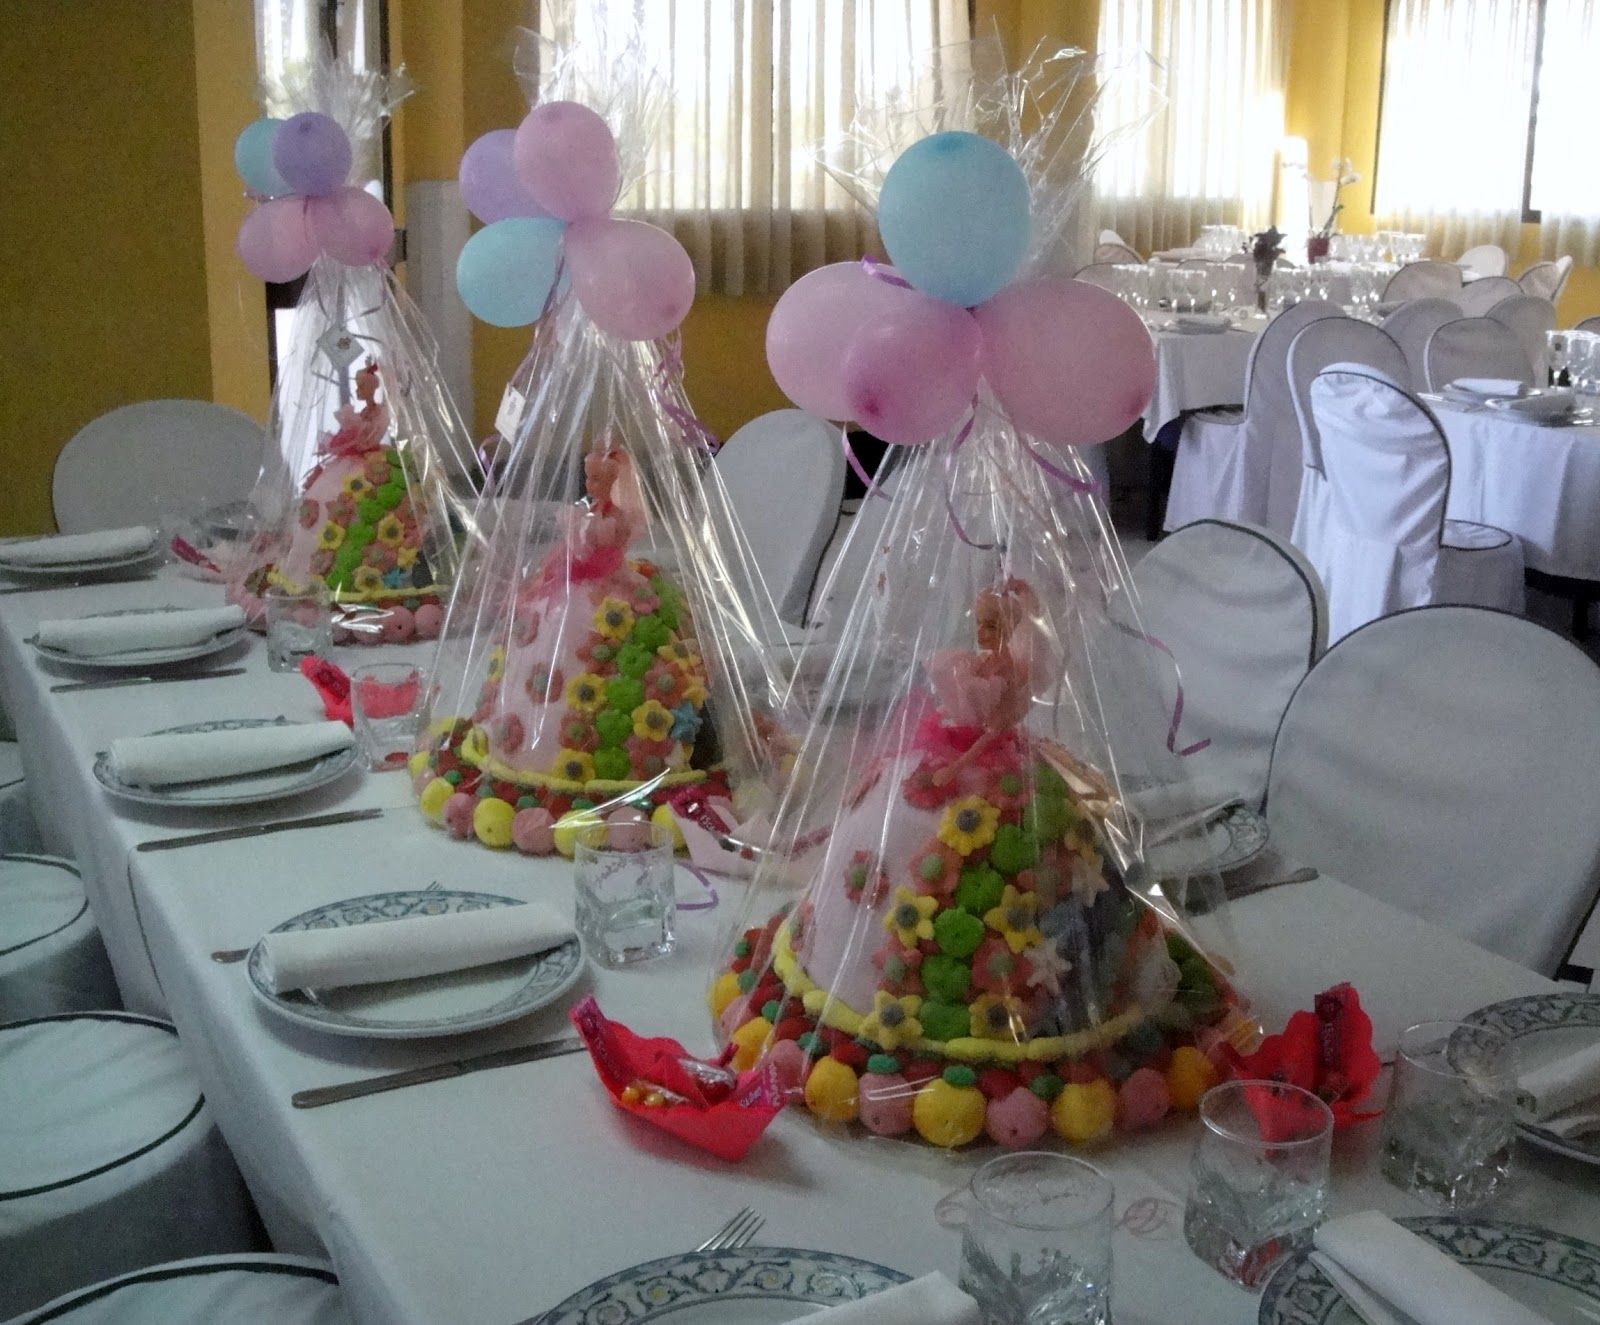 Decorar Con Chuches Una Comunion Decoracion Mesa Chuches Comunion